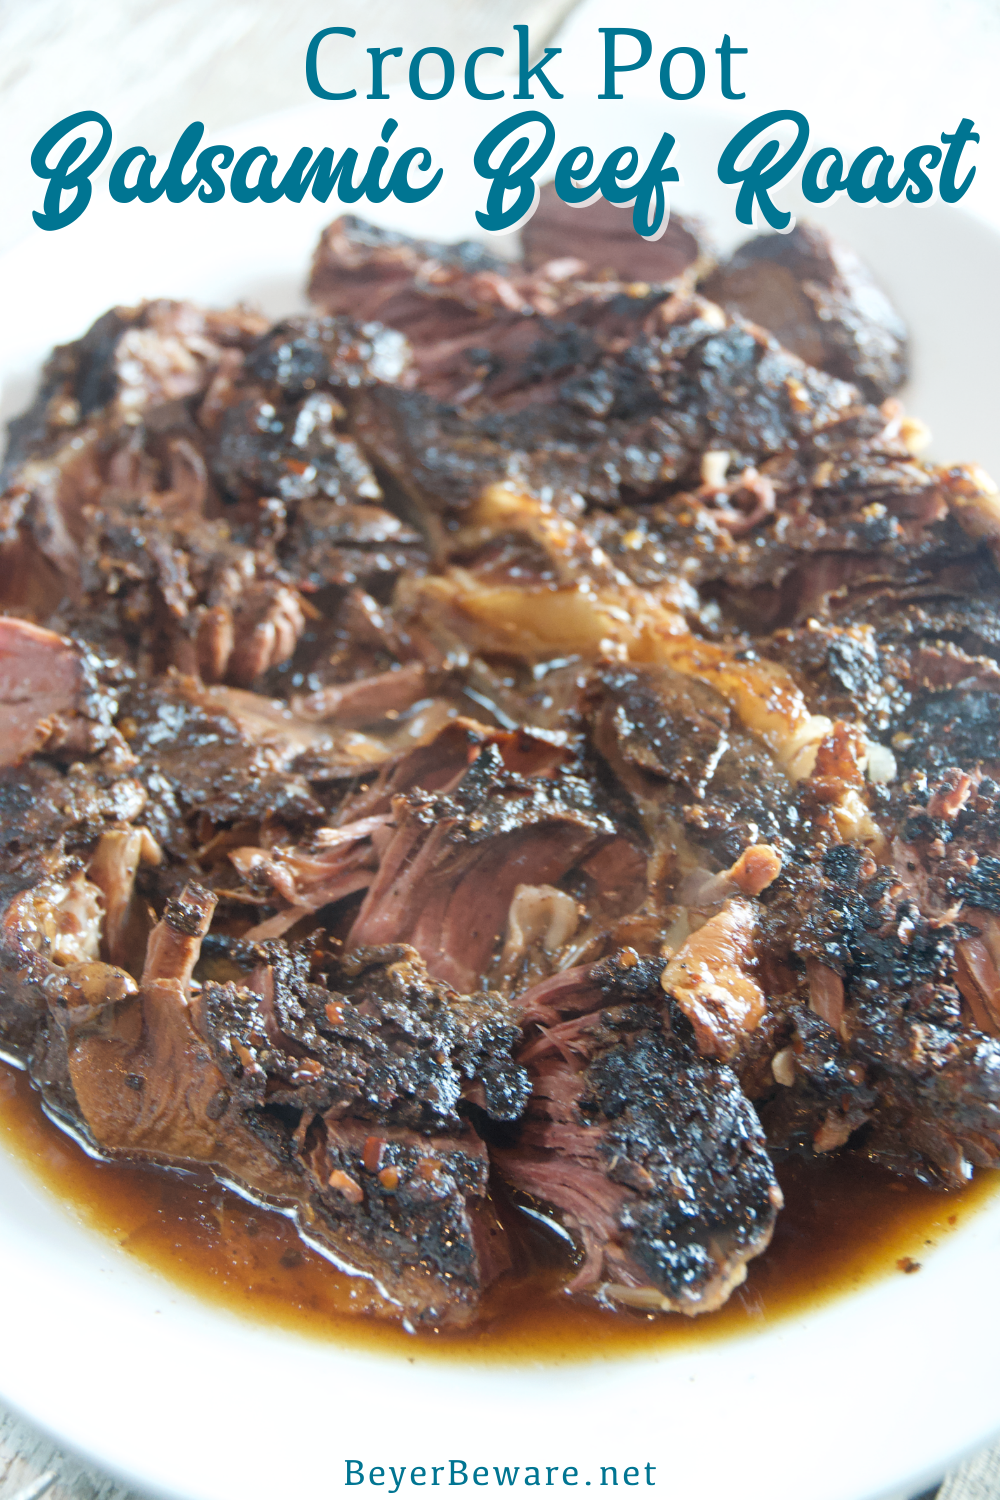 Crock Pot balsamic beef roast recipe combines balsamic vinegar with honey and red peppers over a beef roast for a tender and juicy slow cooker beef roast.